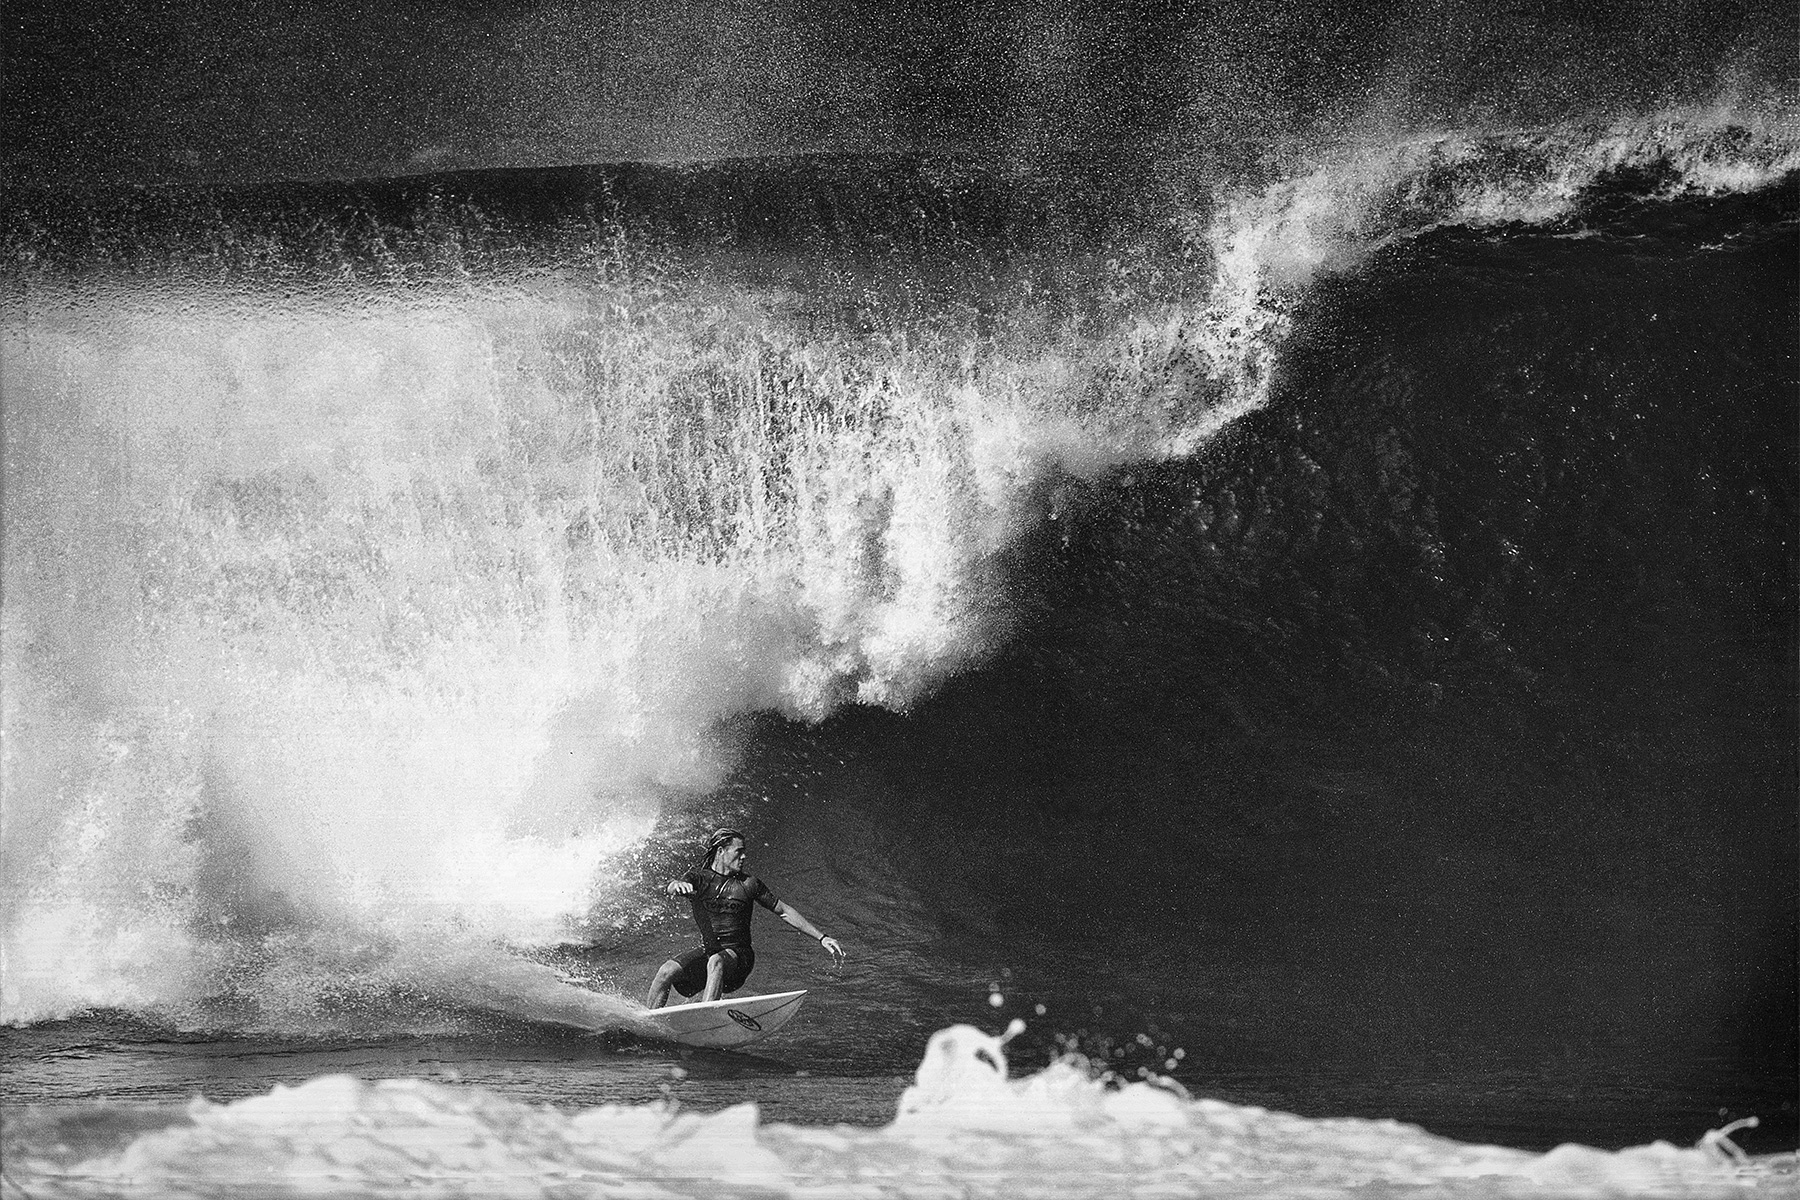 south african surf author john mccarthy surfing in hawaii